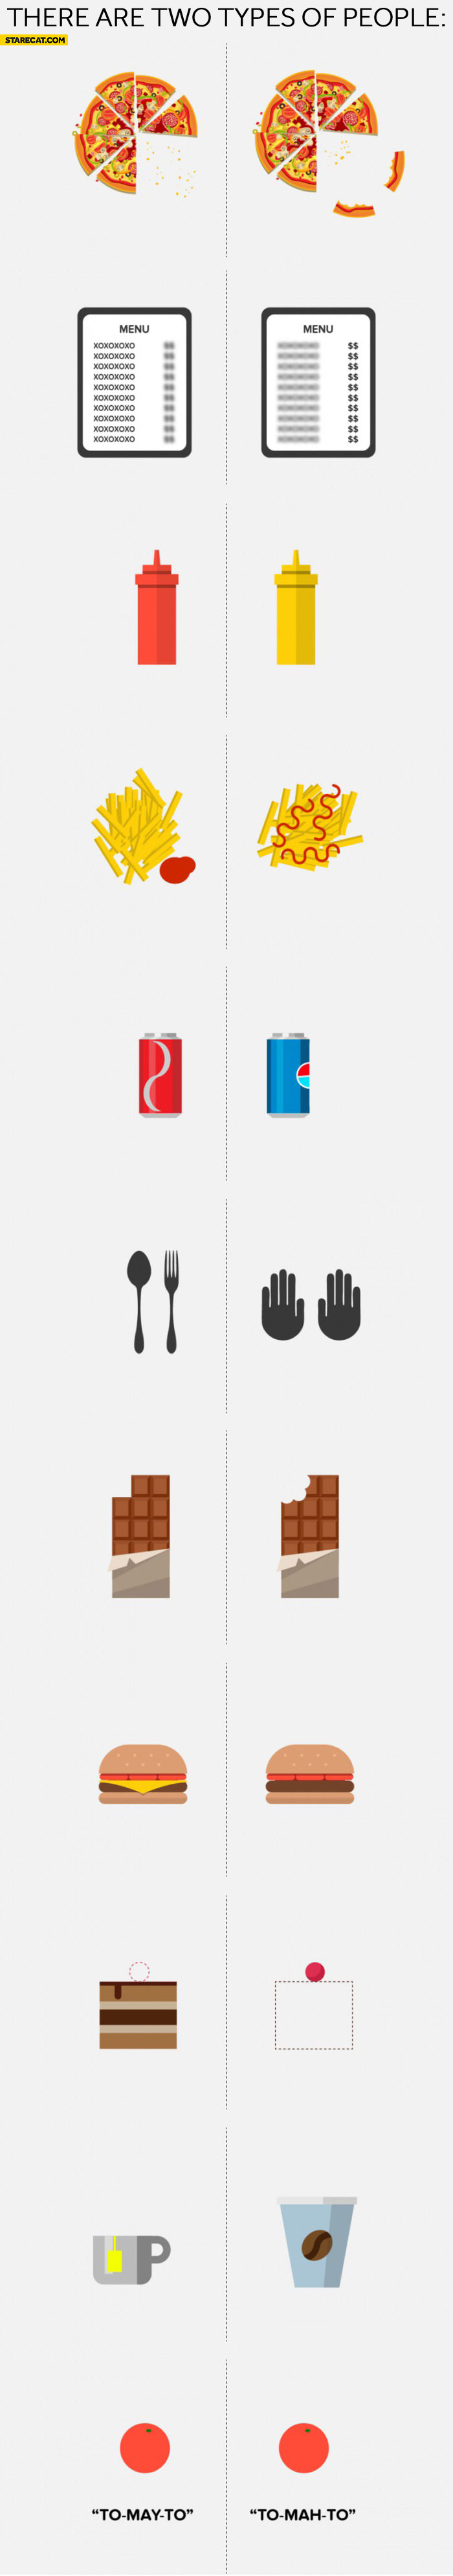 There are two types of people food